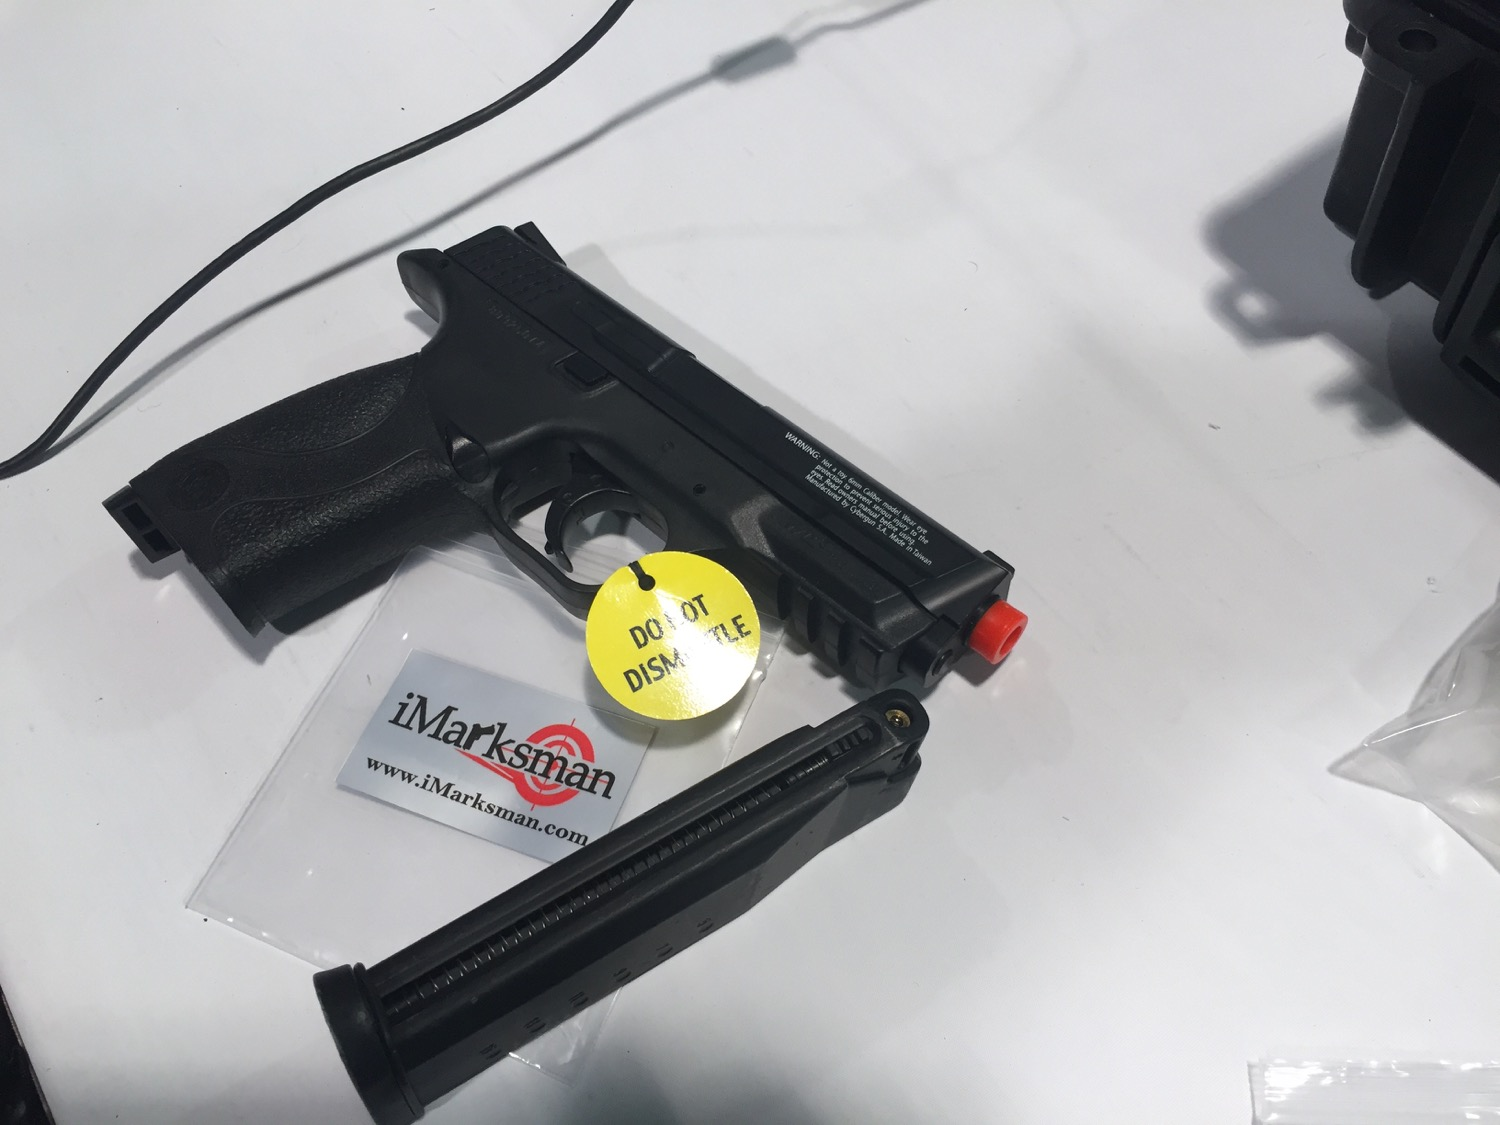 Modified Airsoft pistol that can be used with iMarksman